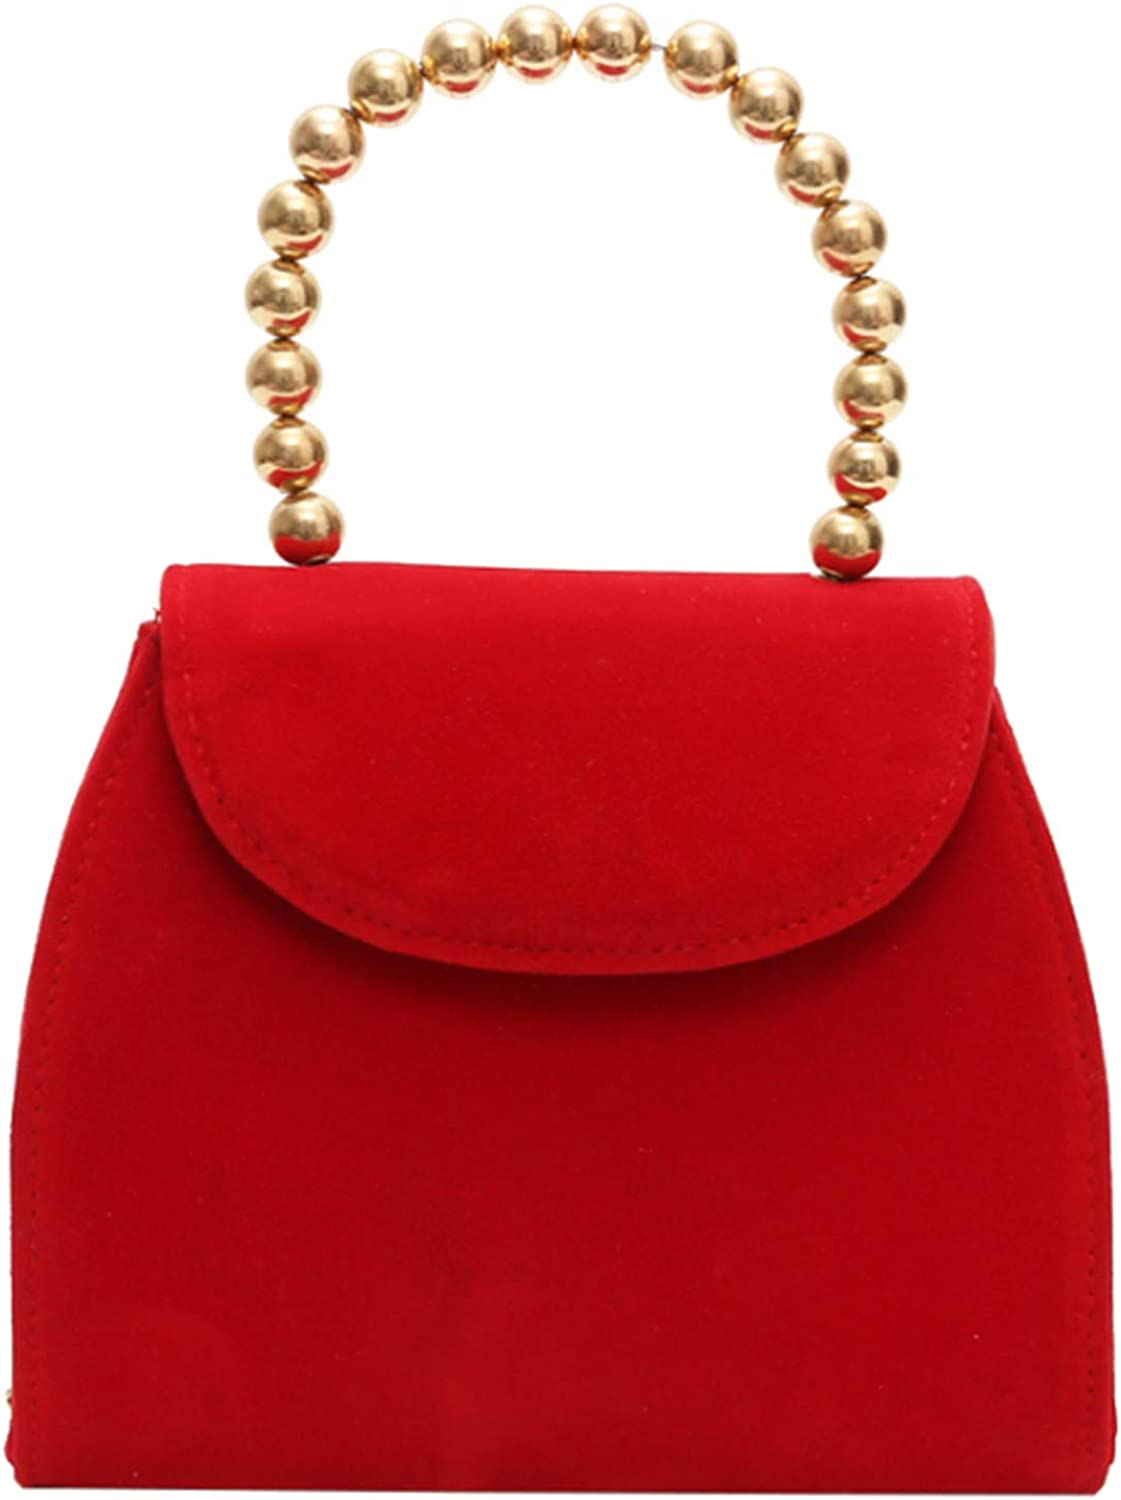 Skyseen Tote Handbags Shoulder Bags Cross Body Bag with Pearl Handle for Women Girls Red